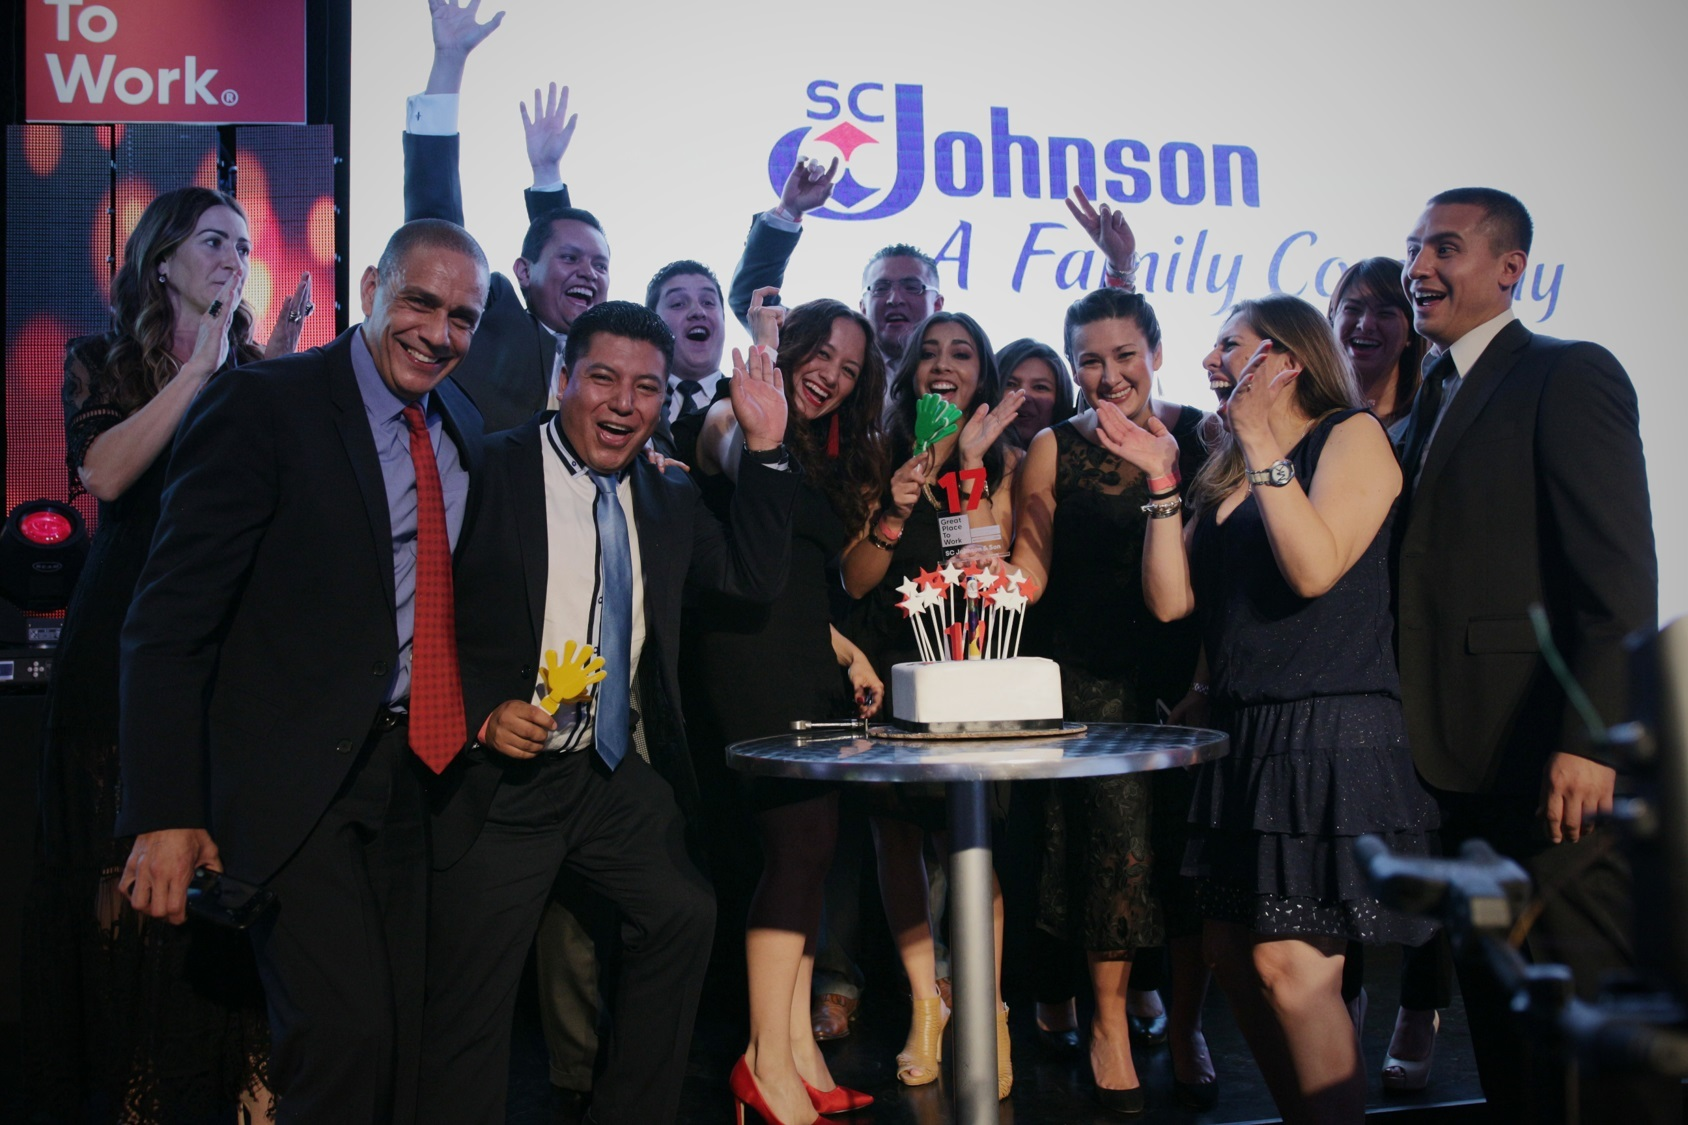 World's Best Companies 2018-SC Johnson